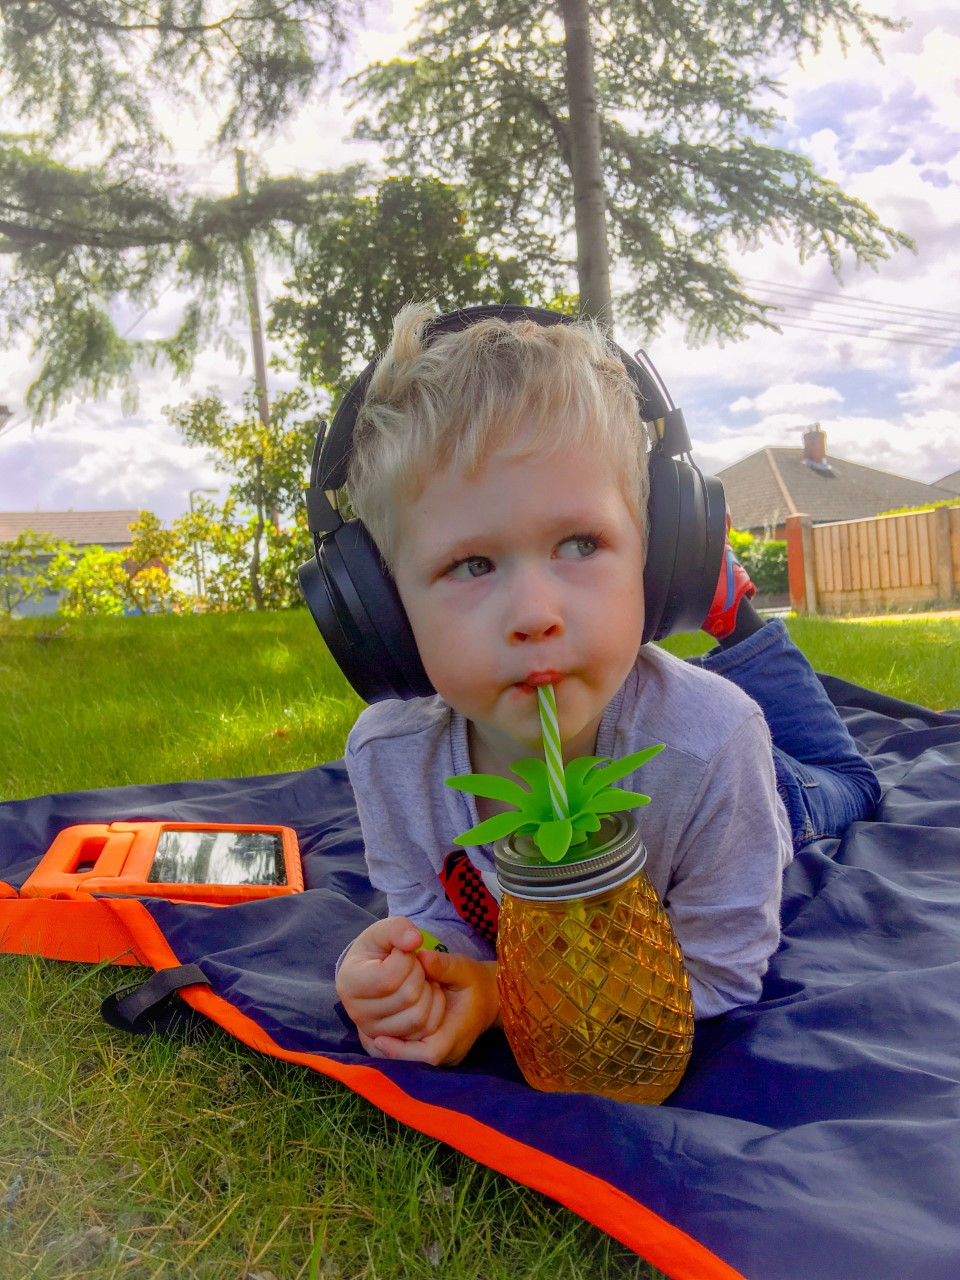 Lucas led outside on a blue blanket with his tablet next to him, wearing the black headphones and drinking from a pineapple cup